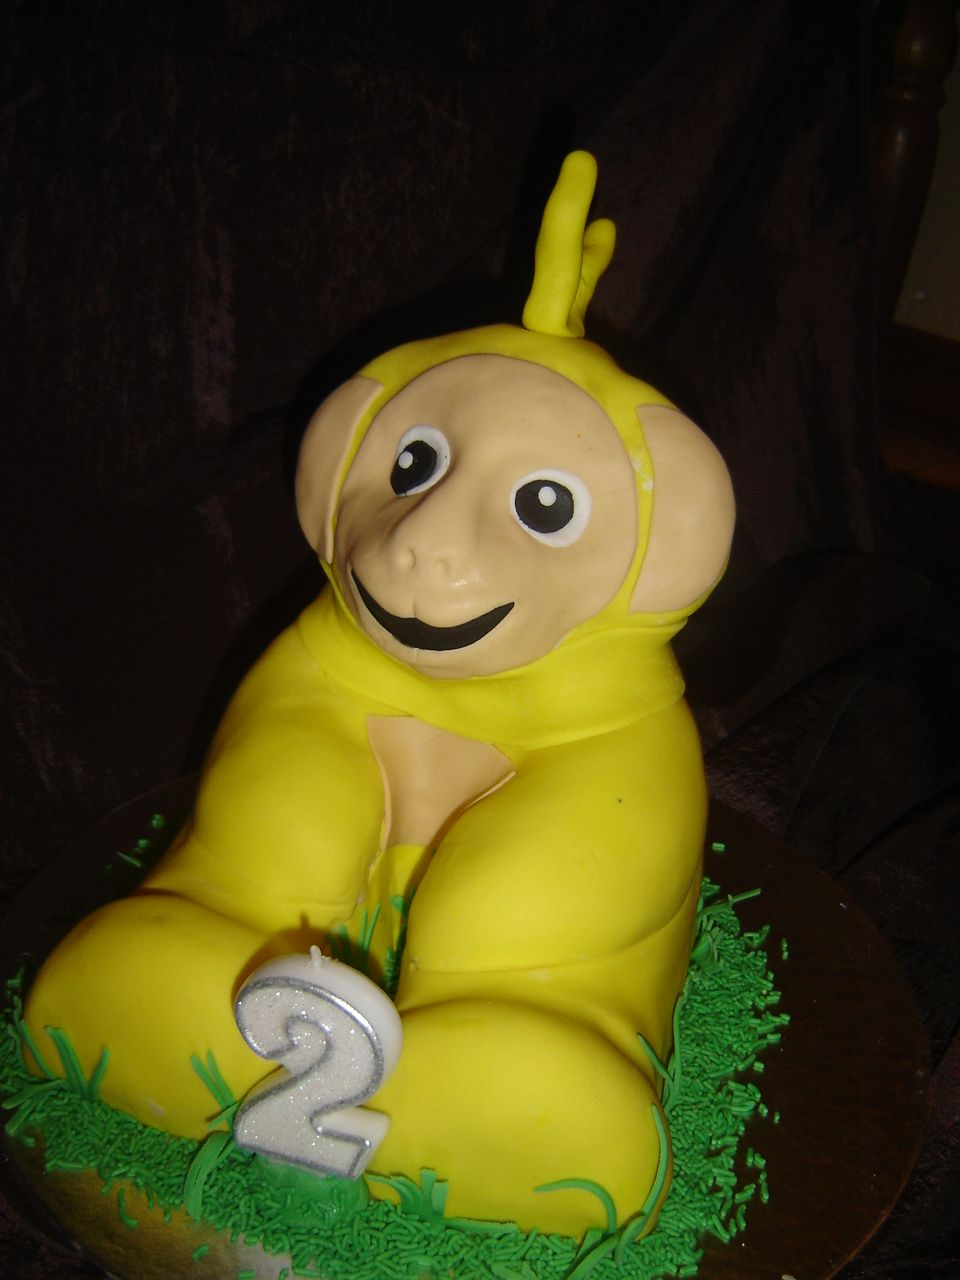 Lala teletubbies cake | The Cookie Jar 2013 | Pinterest